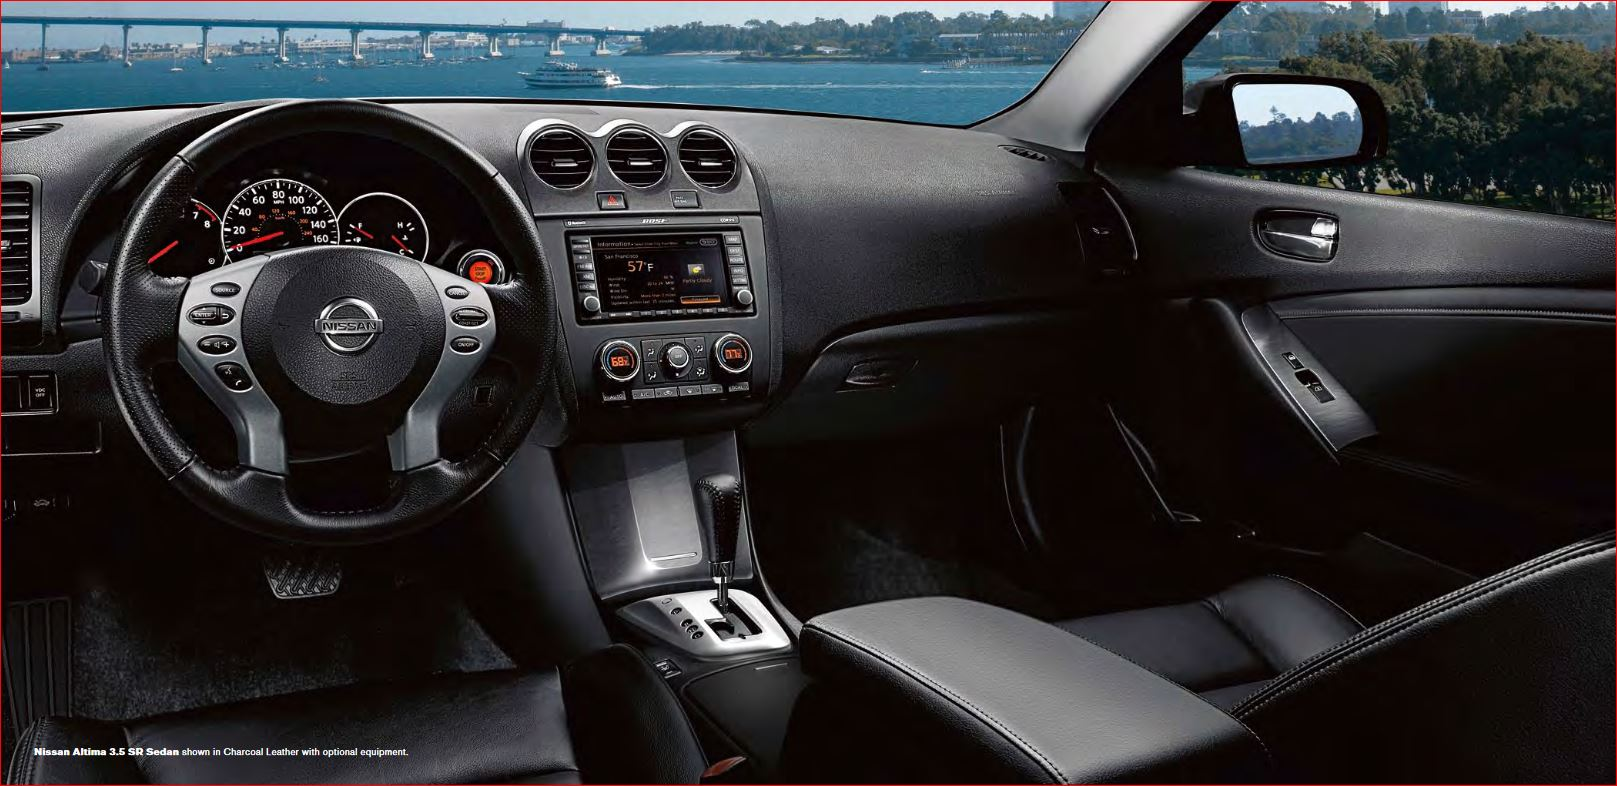 2012 Nissan Altima Inside Used Car And Auto Parts Sale